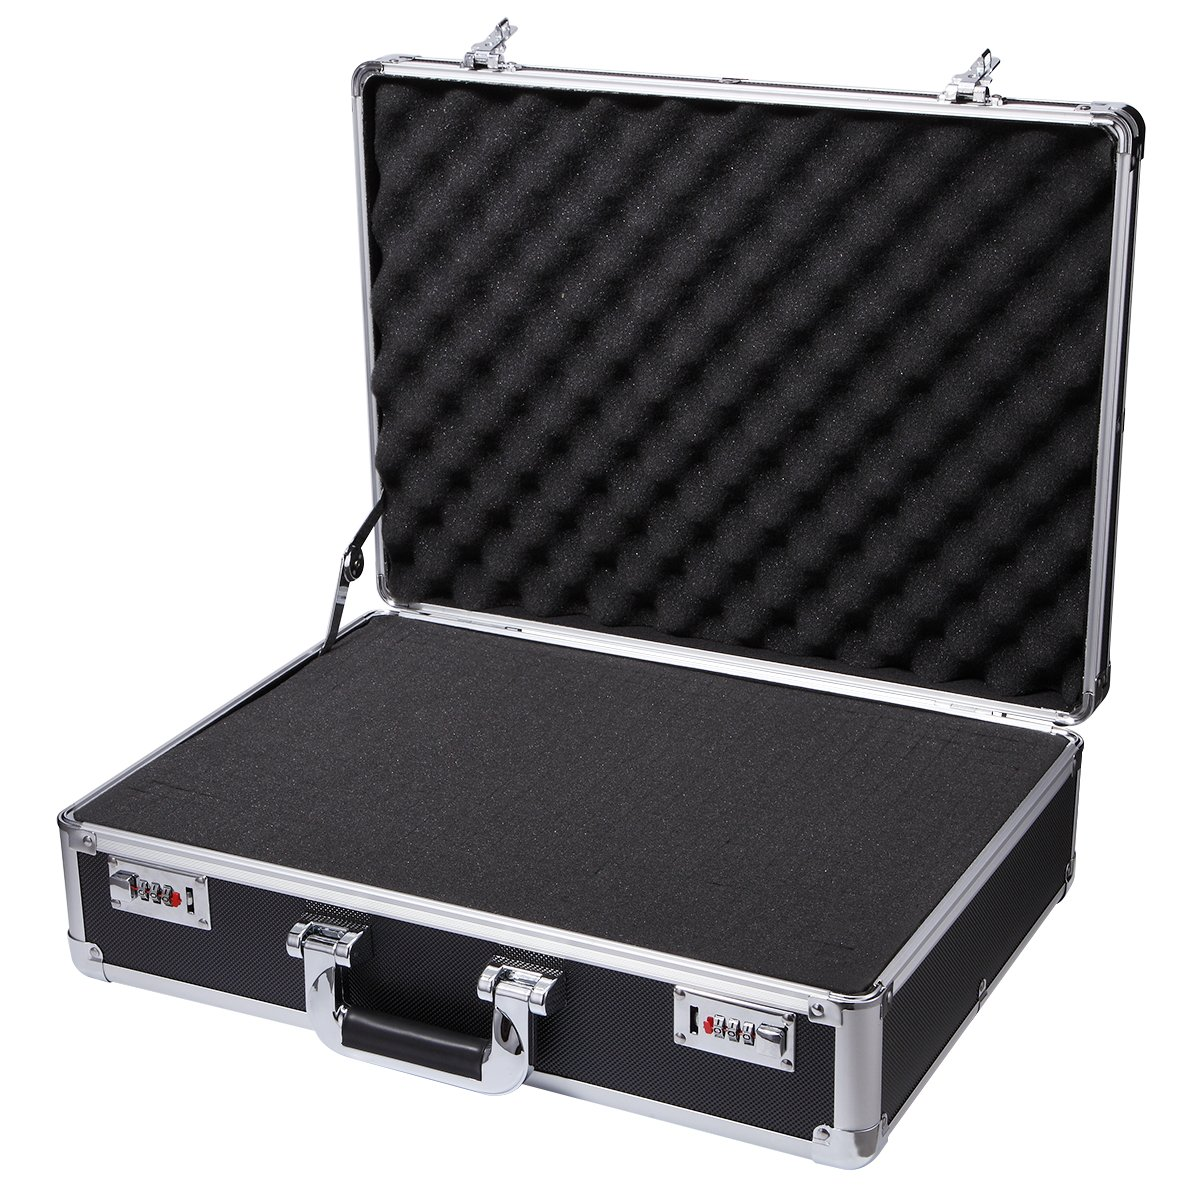 Aluminum Hard Case Foam Black Briefcase ToolBox Carrying Case Portable Tool Case by Bory